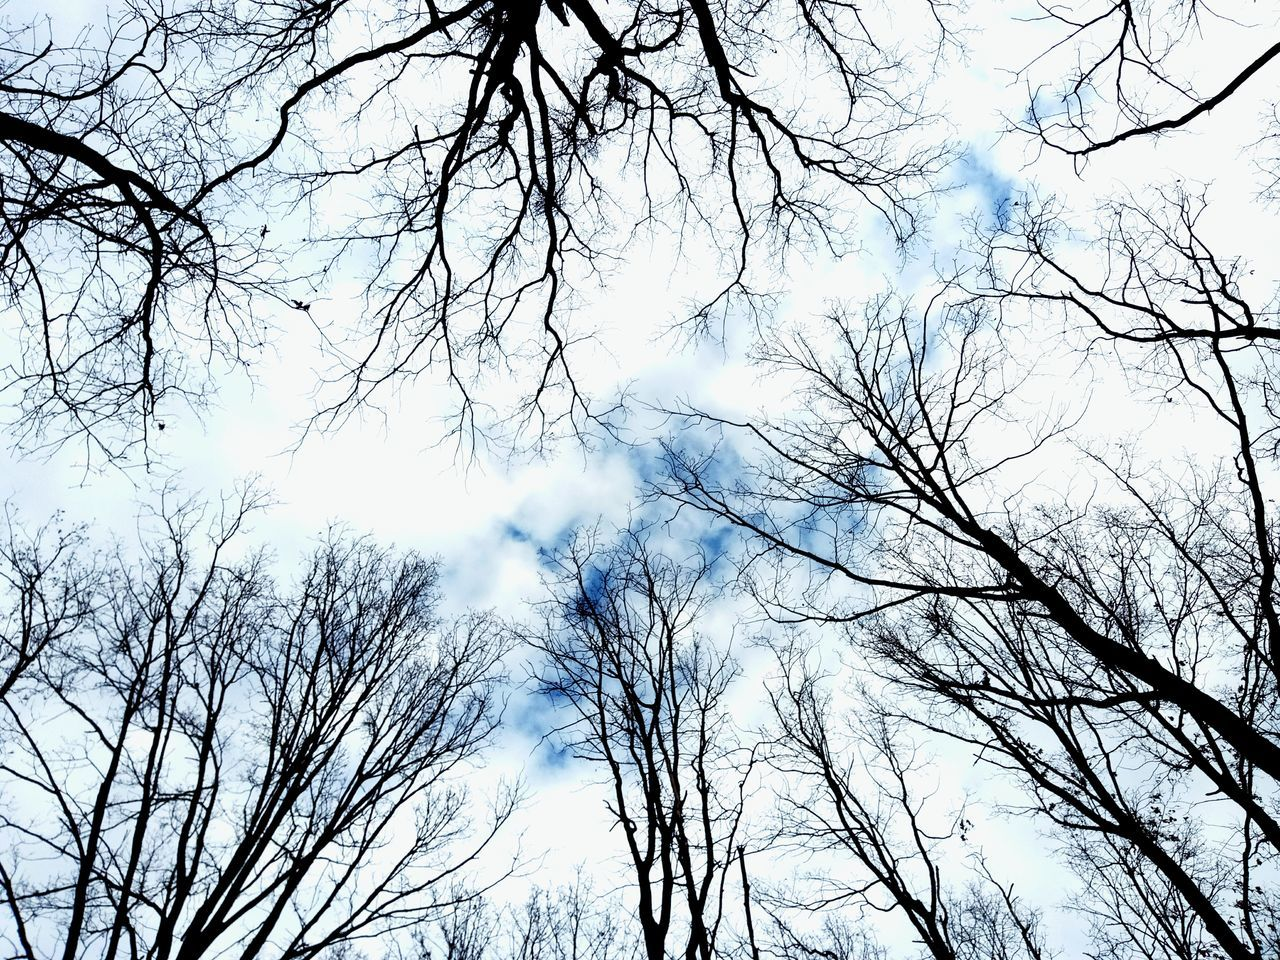 low angle view, bare tree, branch, tree, nature, beauty in nature, sky, day, no people, tranquility, outdoors, scenics